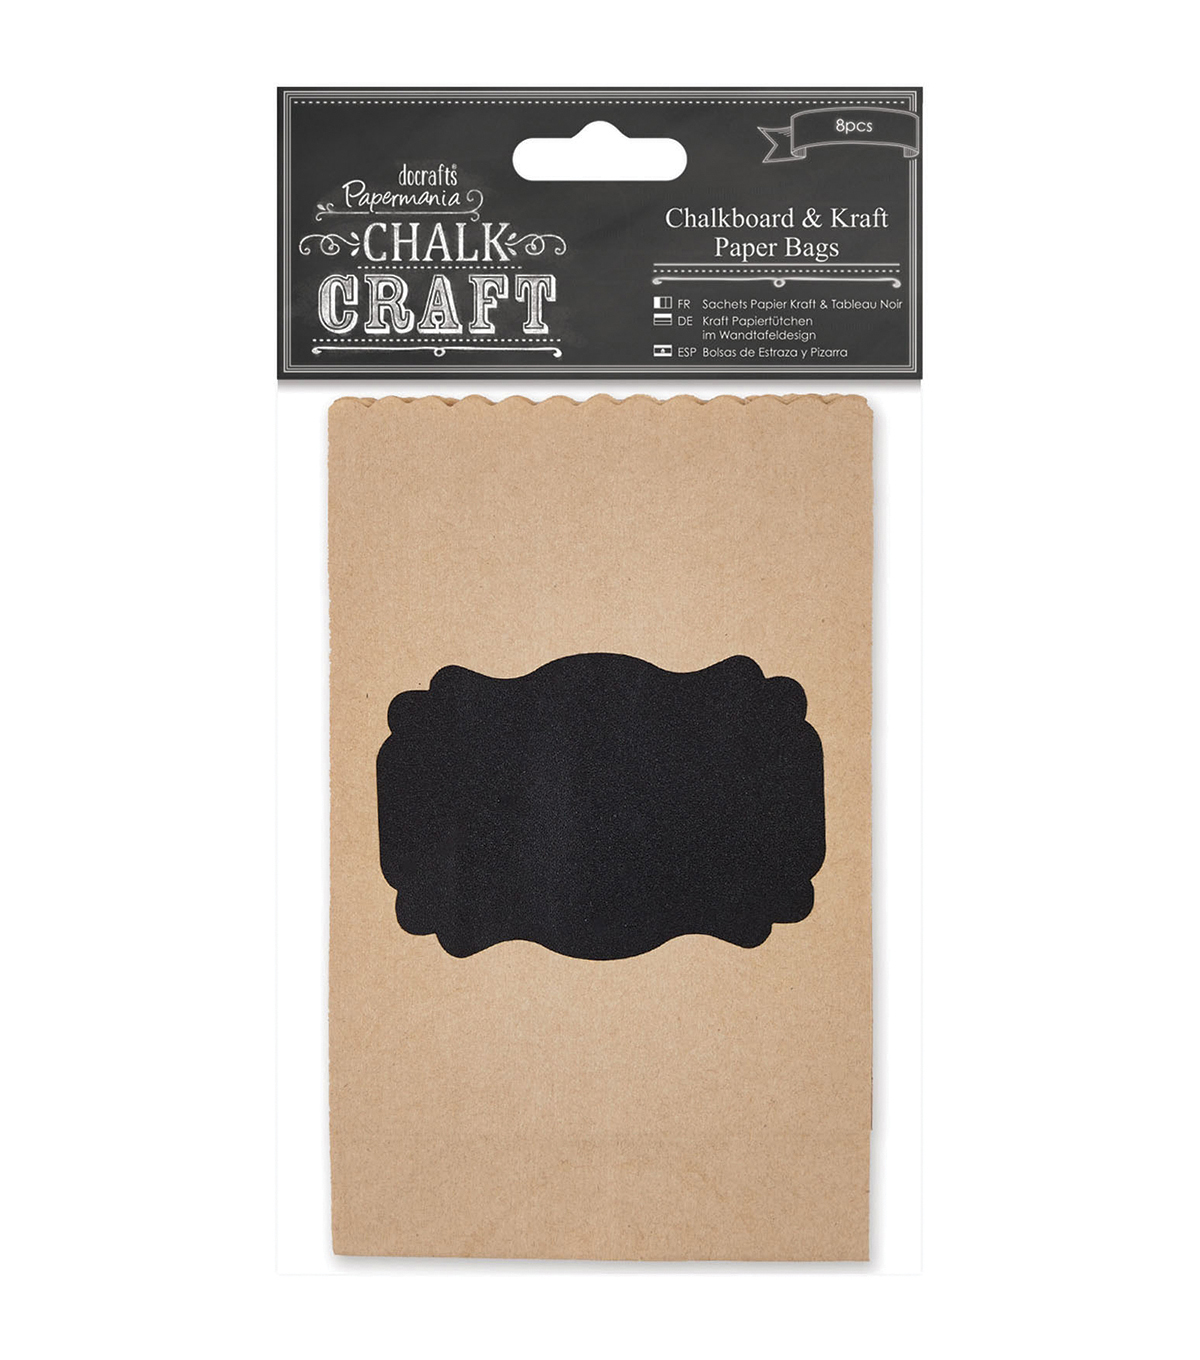 Papermania Chalk Craft Papermania Chalkboard & Kraft Paper Bags